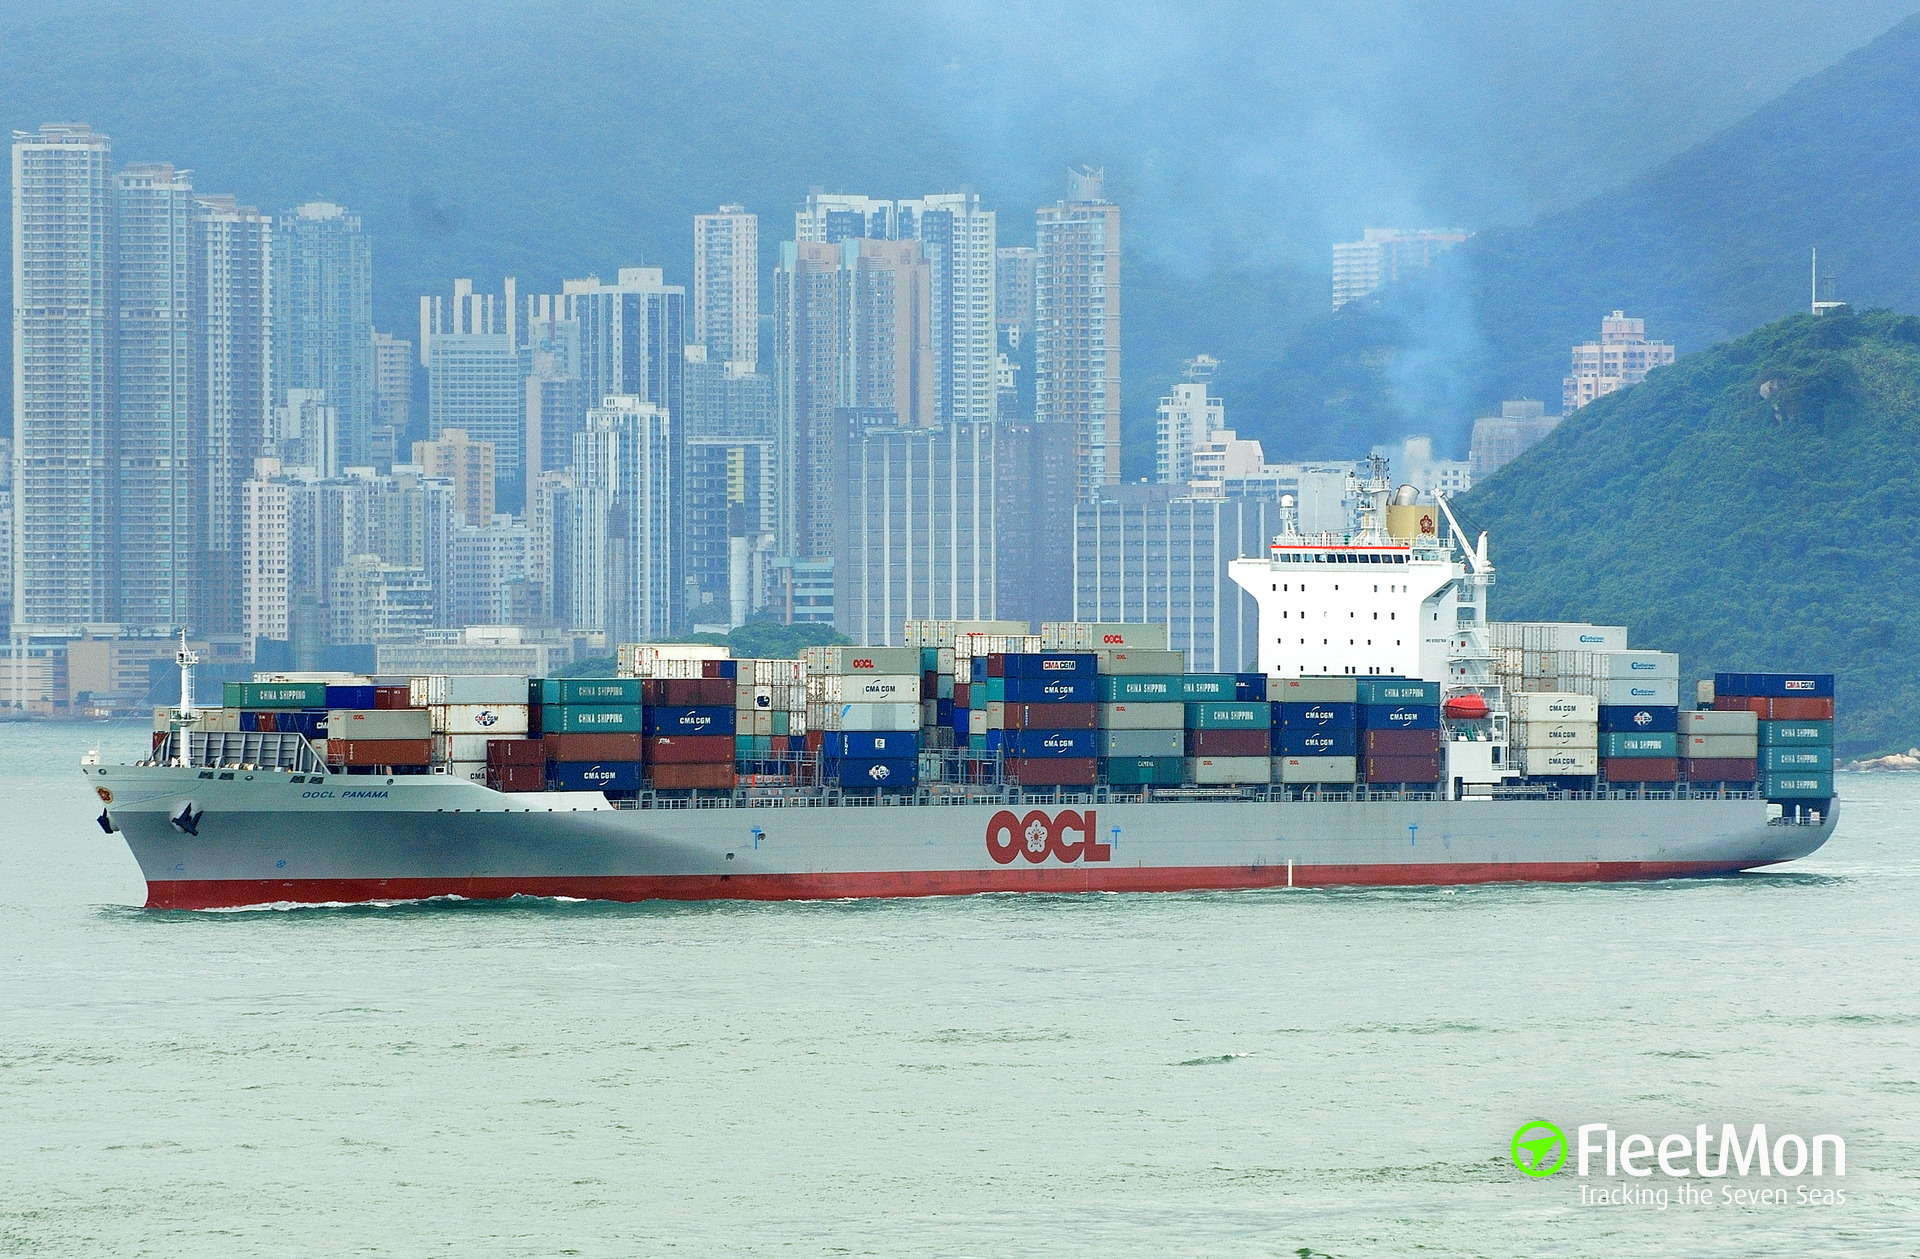 OOCL PANAMA (Container ship) IMO 9355769